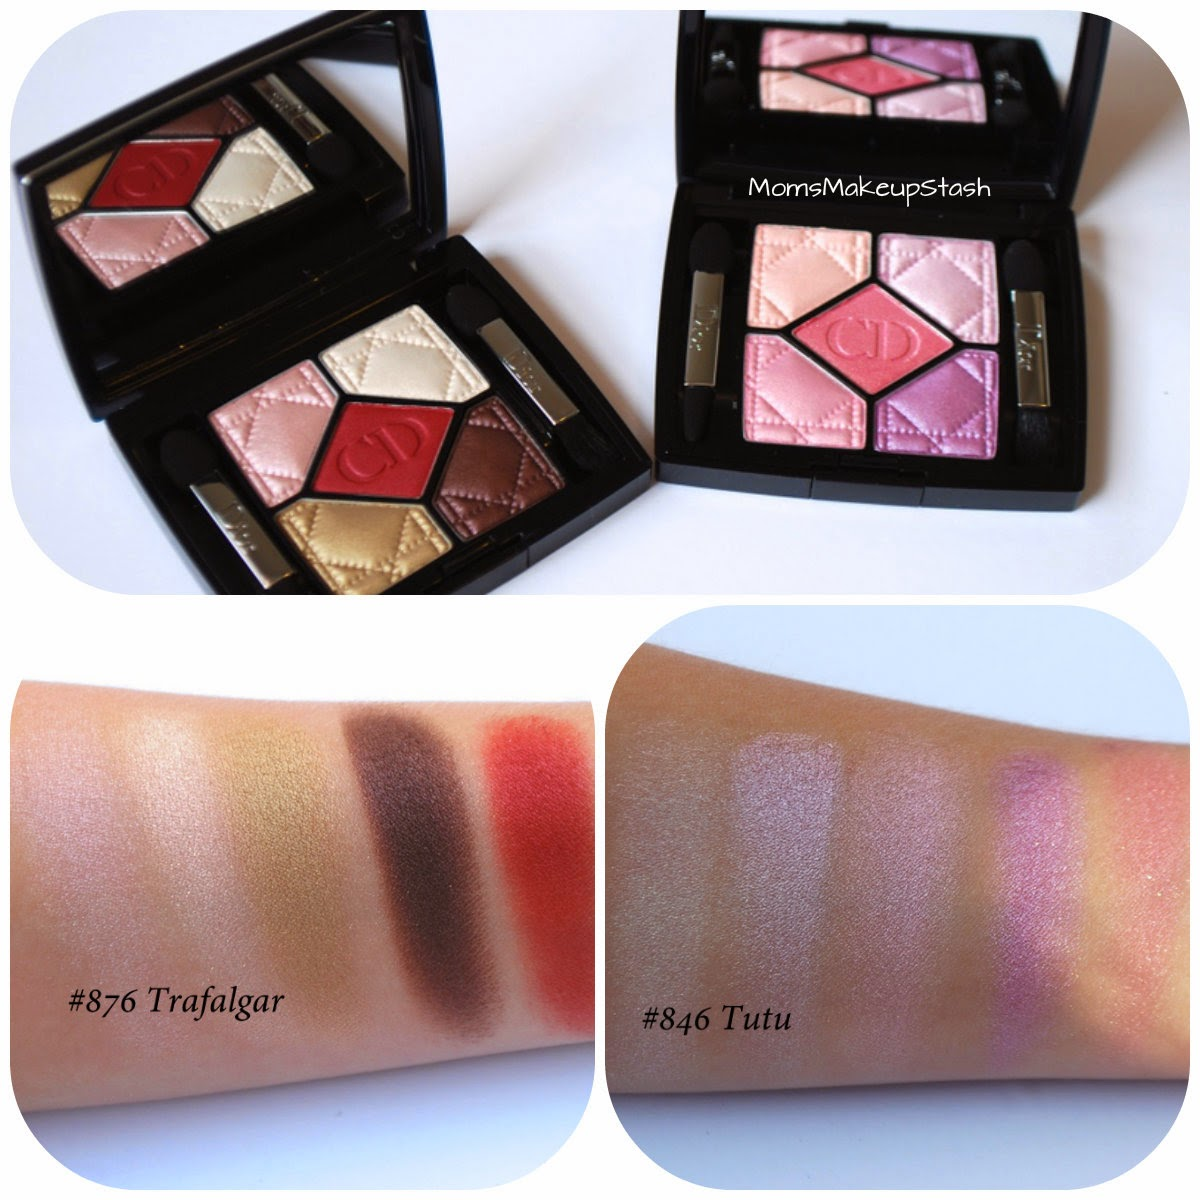 Dior Fall, Dior Fall 2014, Dior Fall Collection, Dior 5-Couleurs Palette, Dior Eye Shadow Review, Dior Fall Swatches, Dior Trafalgar, Dior Tutu